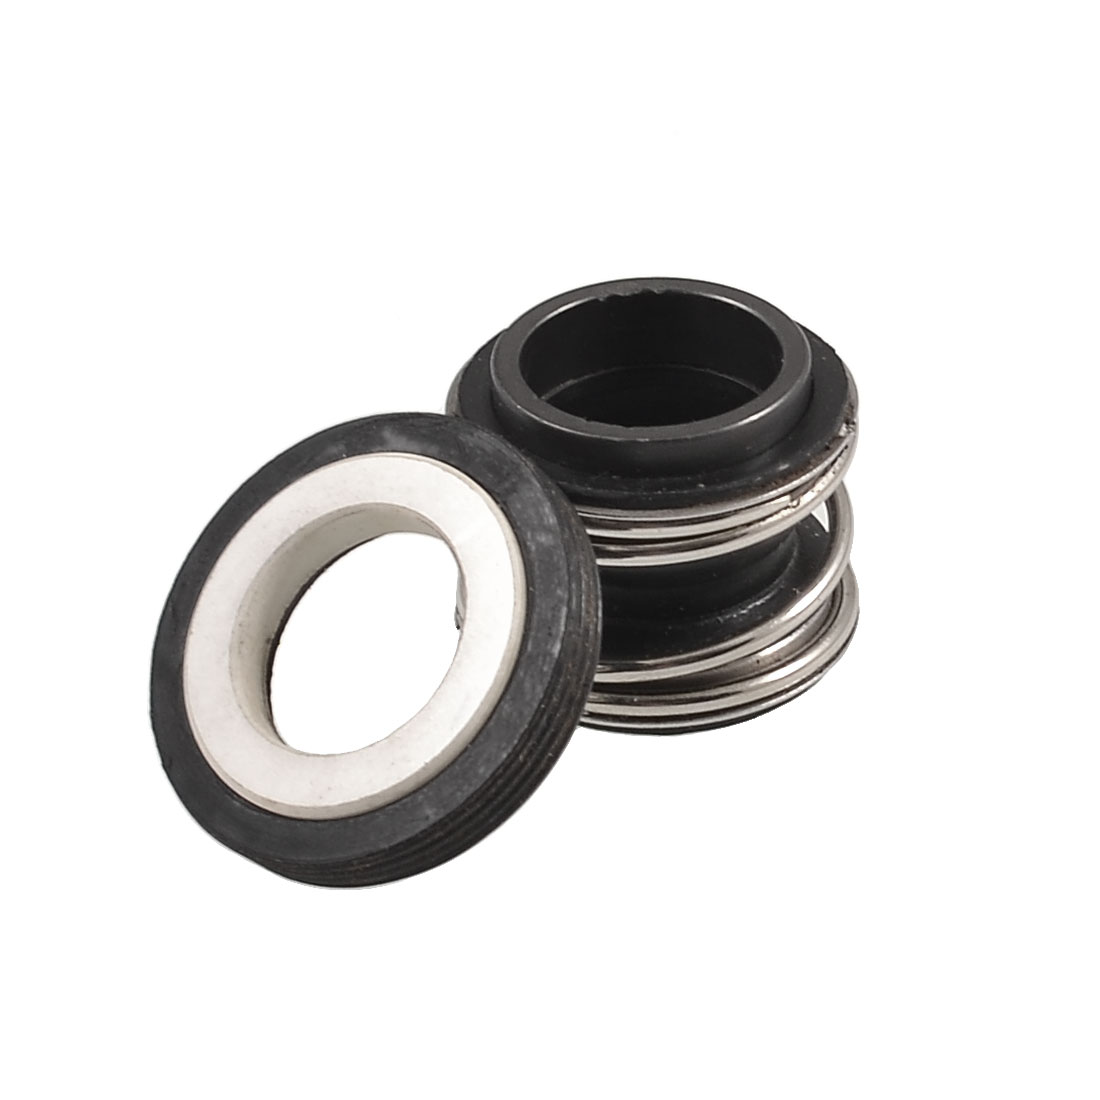 18mm Tube Sealing Rubber Bellows Water Pump Mechanical Seal